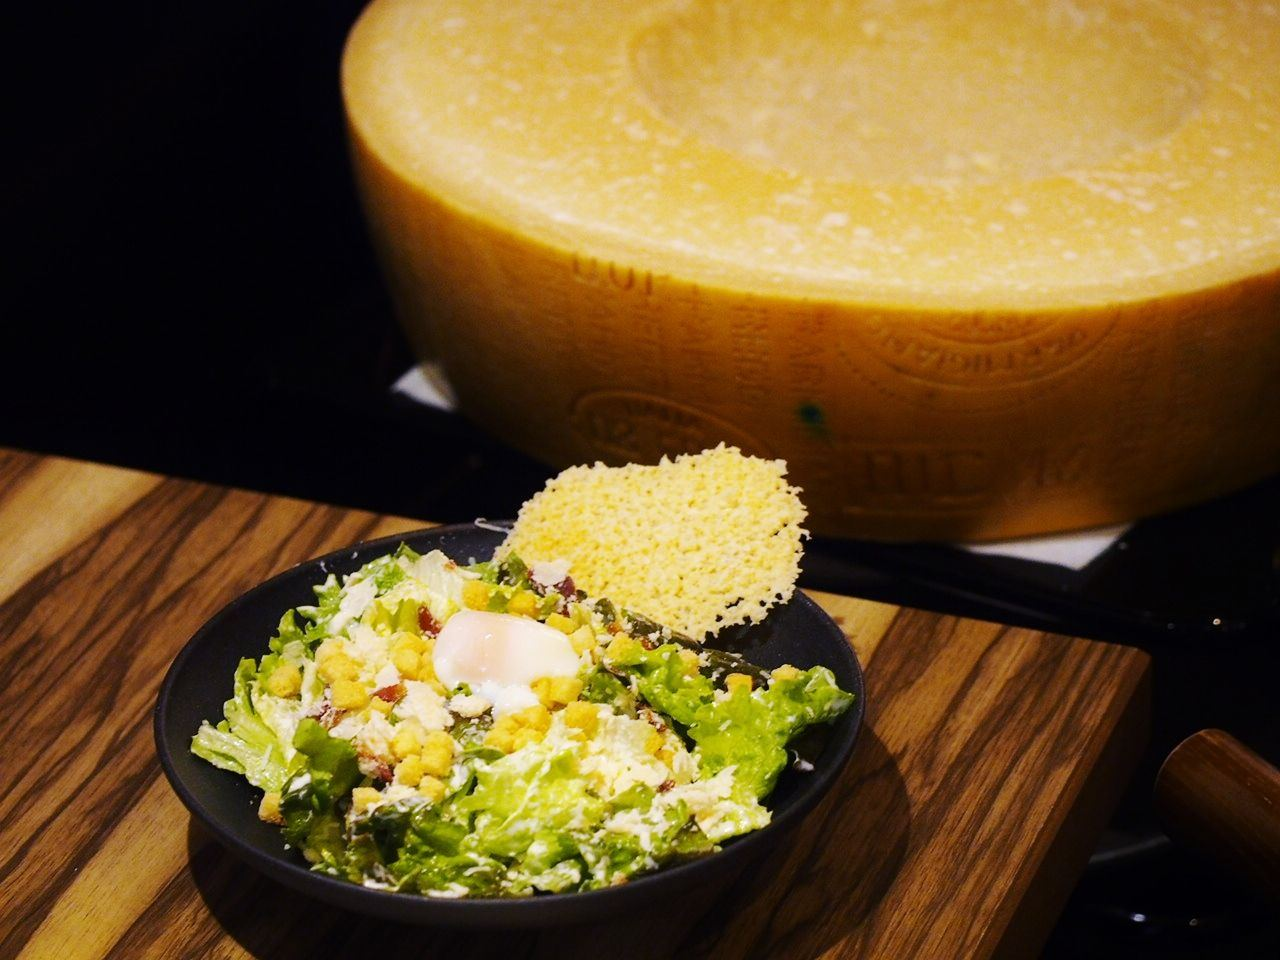 Luxury Caesar Salad, Tossed in a Parmesan Cheese Bowl(1280 yen)